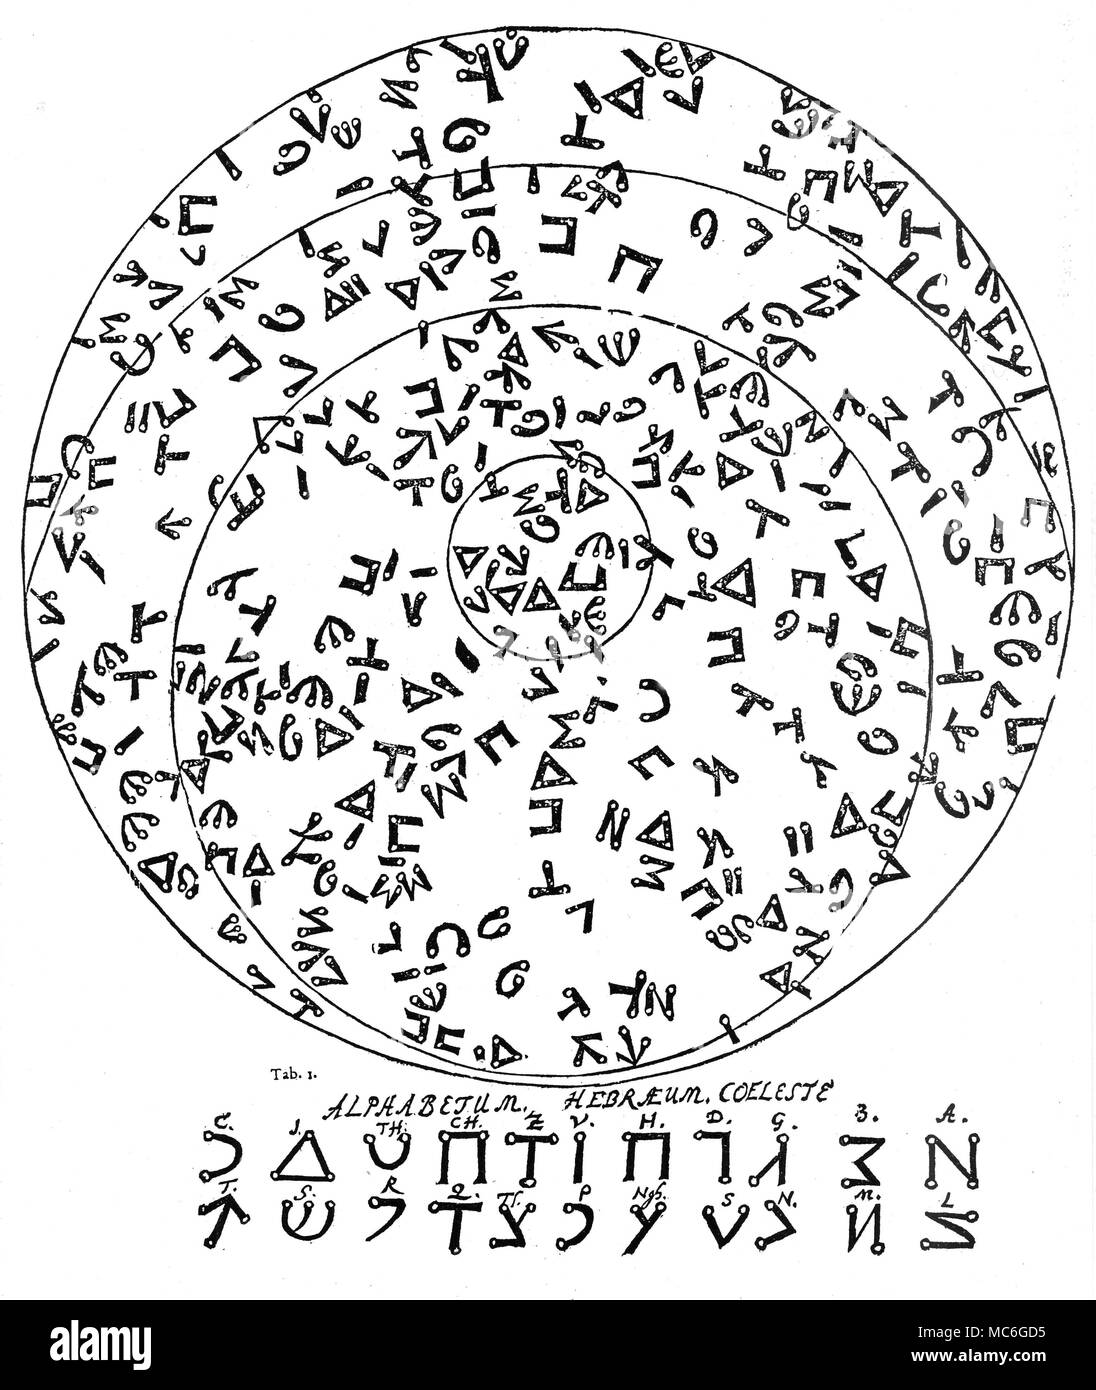 SECRET ALPHABETS - CELESTIAL SCRIPT The Hebrew alphabet called Alphabetum Coeleste, or Celestial Script, at the foot of a celestial image of the sky with the stars and constellations, visualized as Hebrew letter-forms. Fold-out plate from Jacob Gaffarellli, Curiositez Inouyes, Hoc est:  Curiositates Inauditae, 1678 - Stock Image